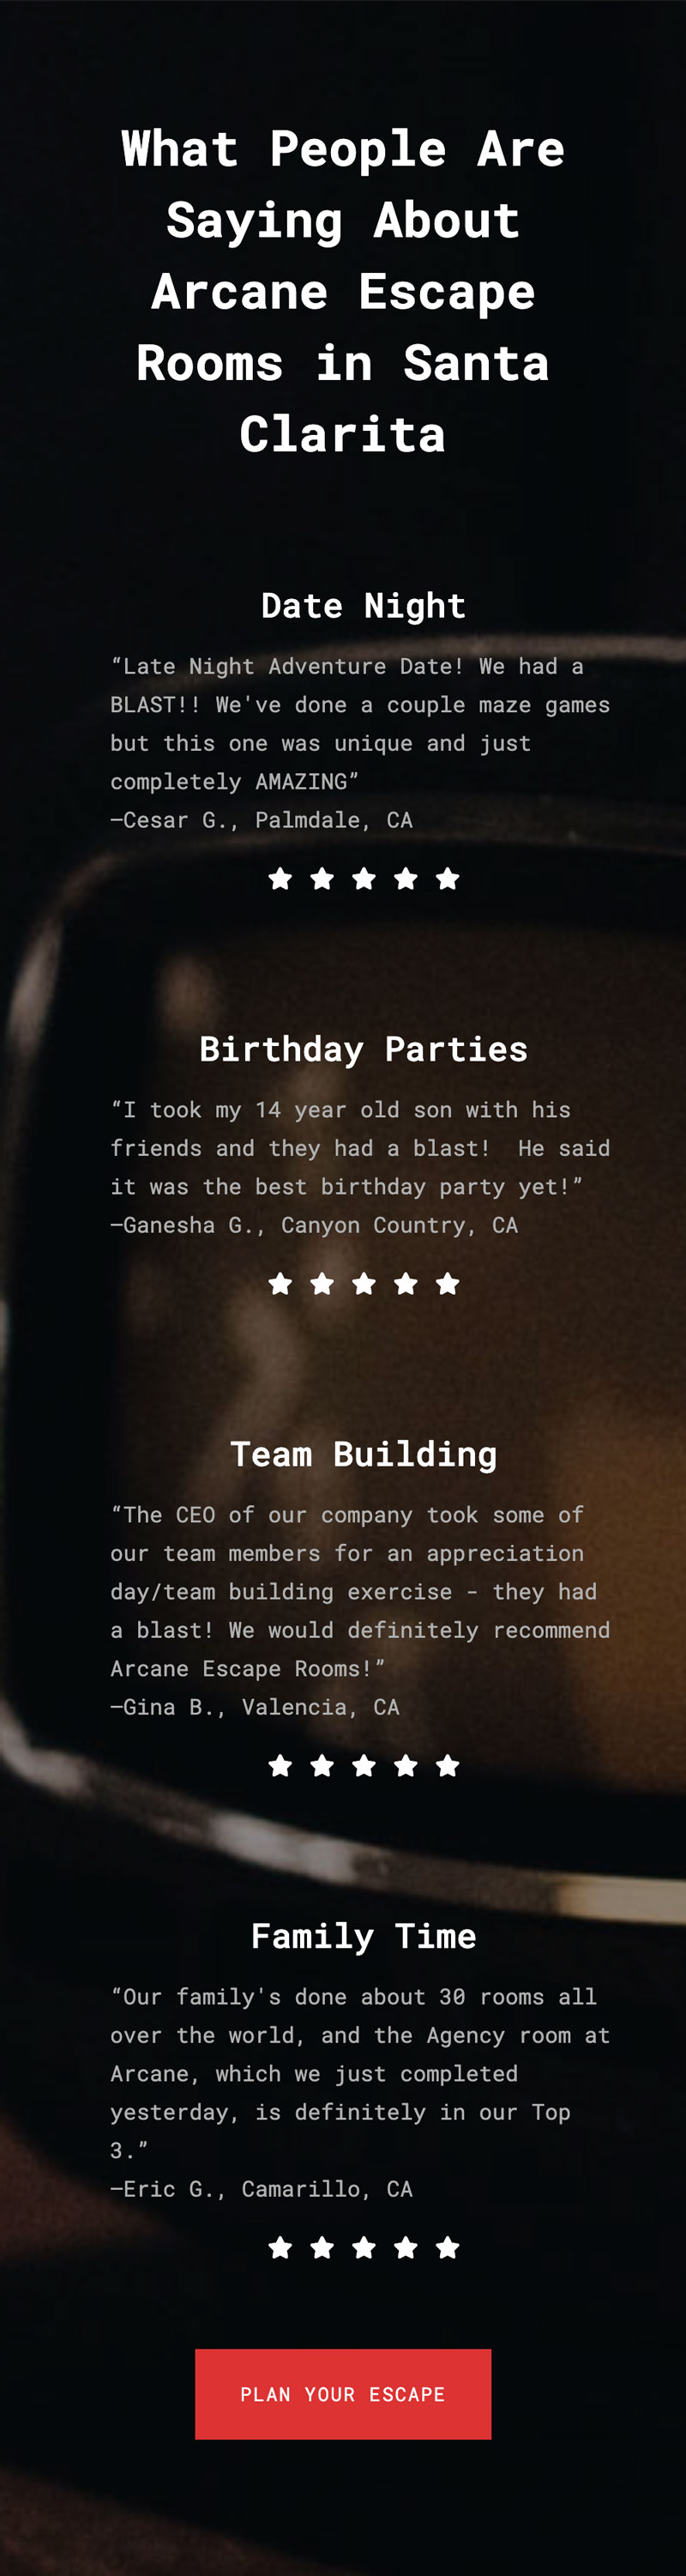 Screenshot of the testimonials page from the Arcane Escape Rooms website redesign.